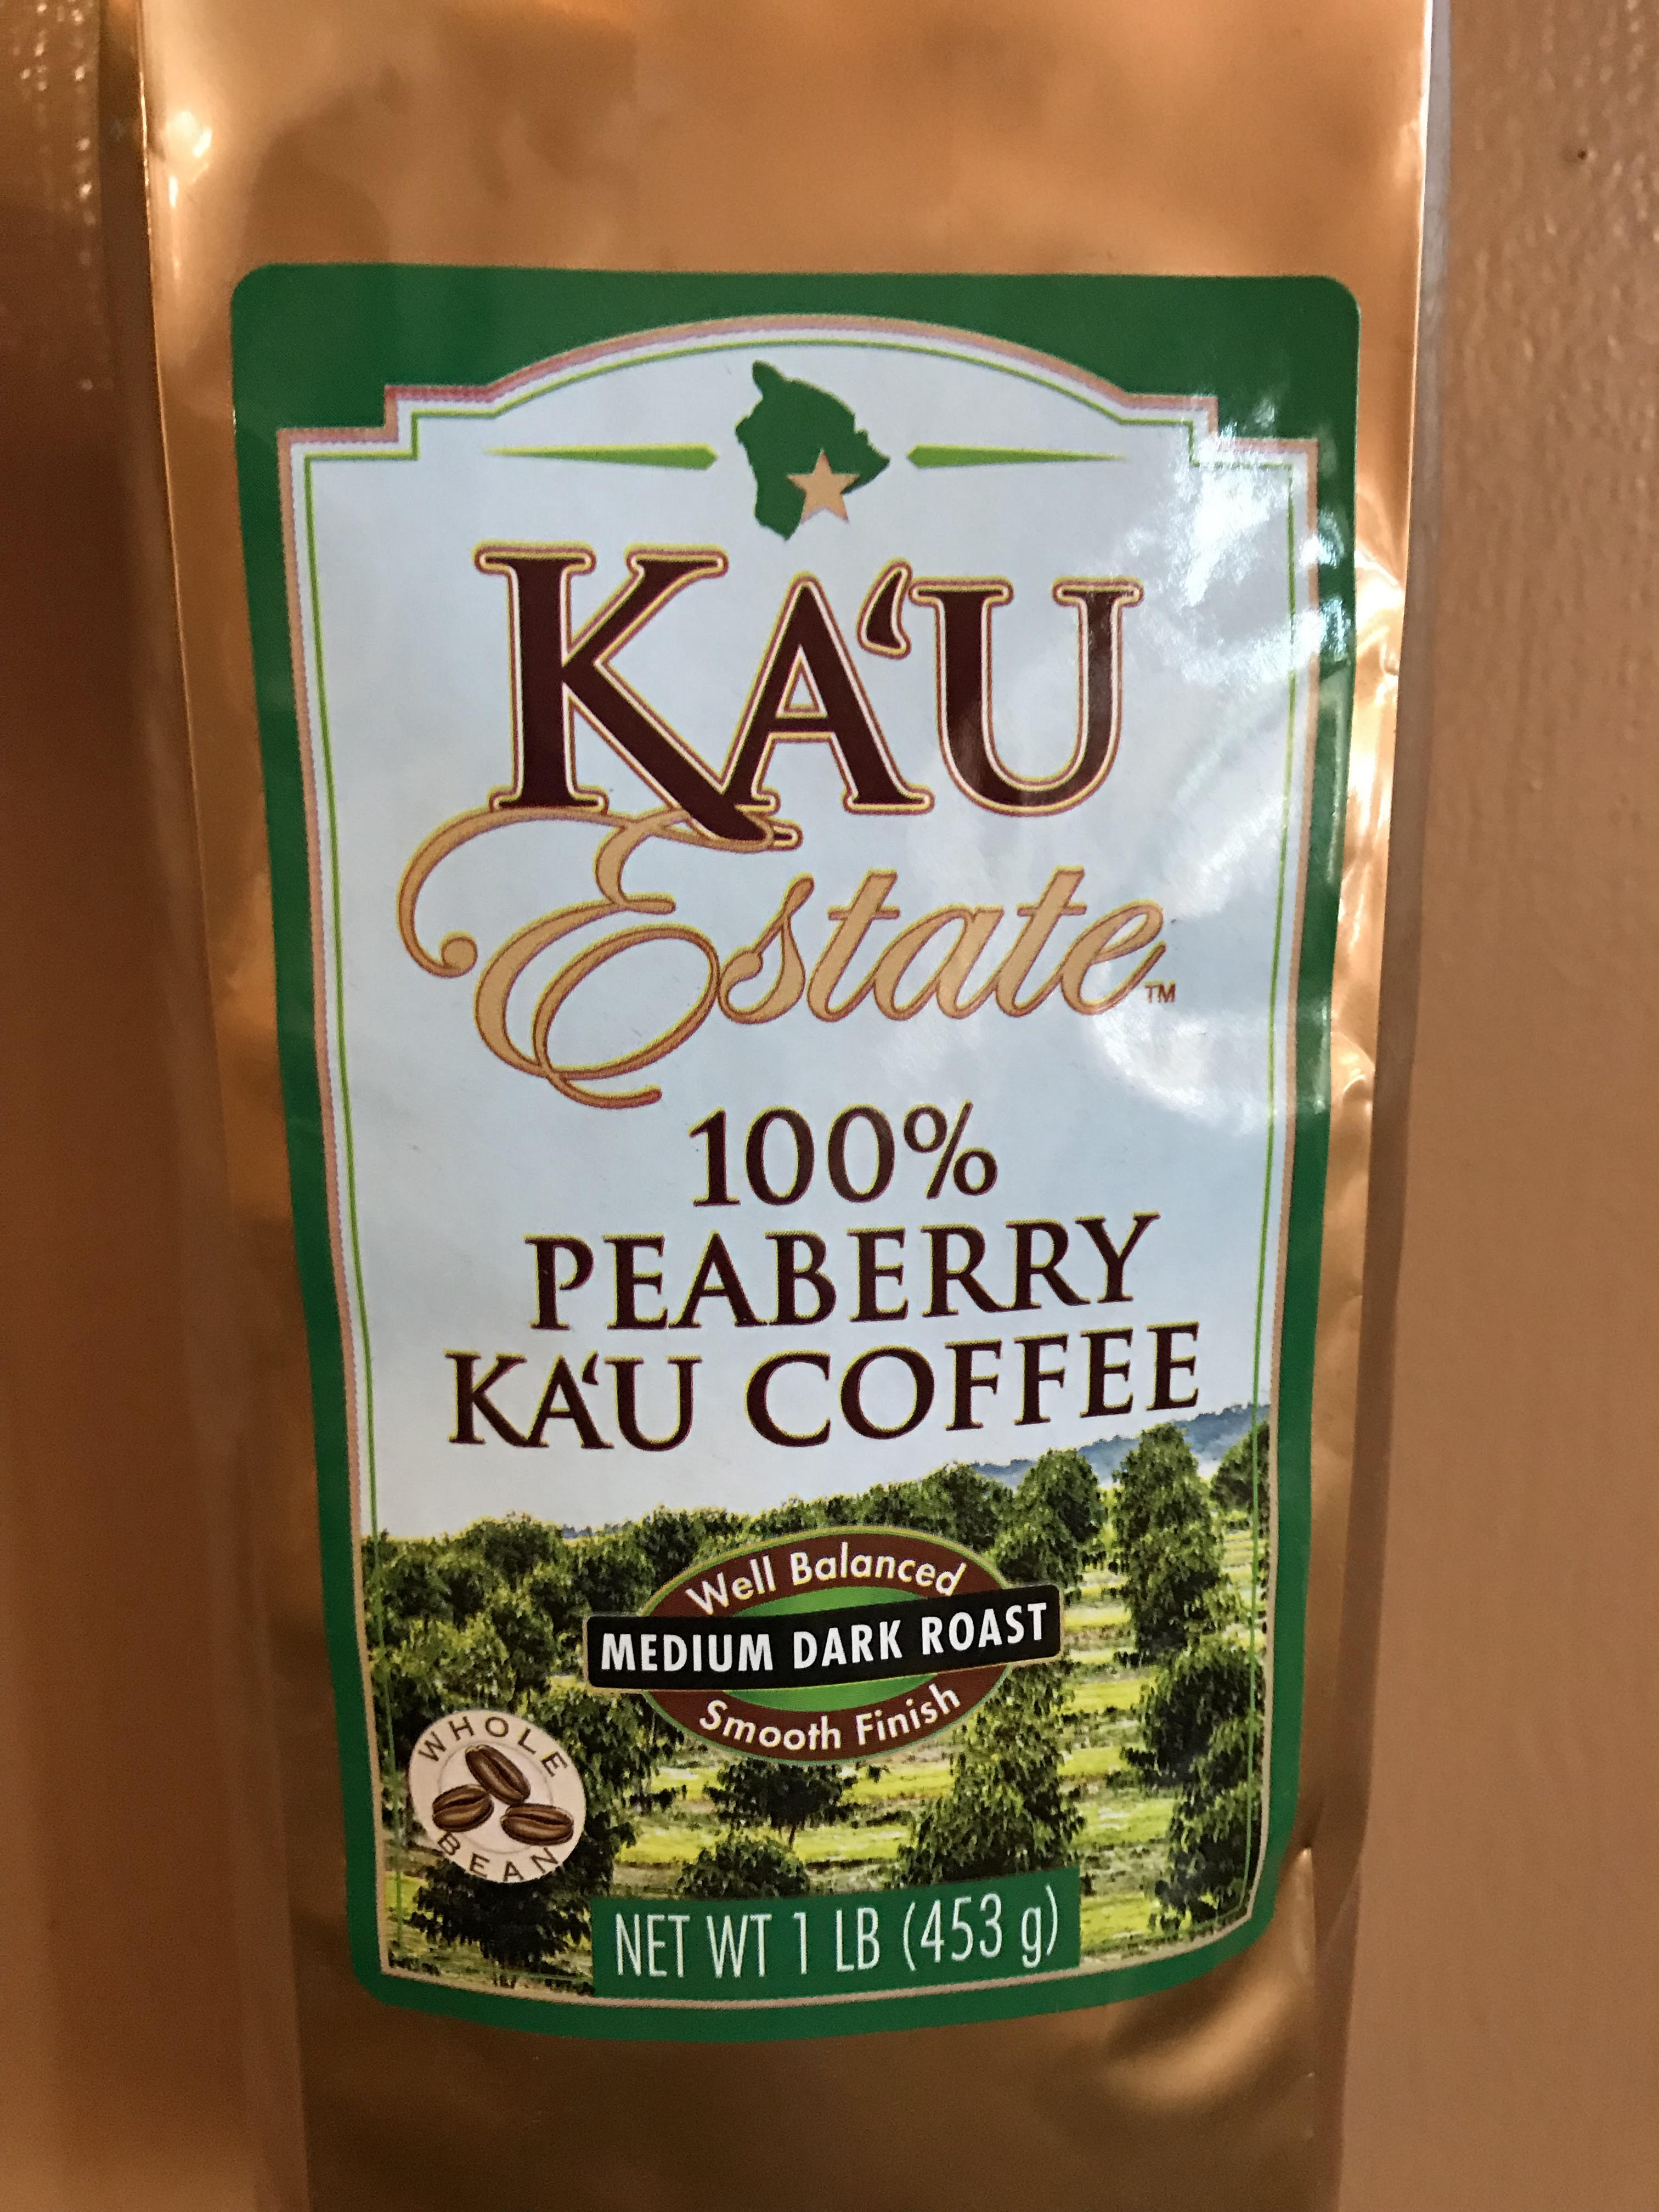 Ka'u Estate 100% Peaberry